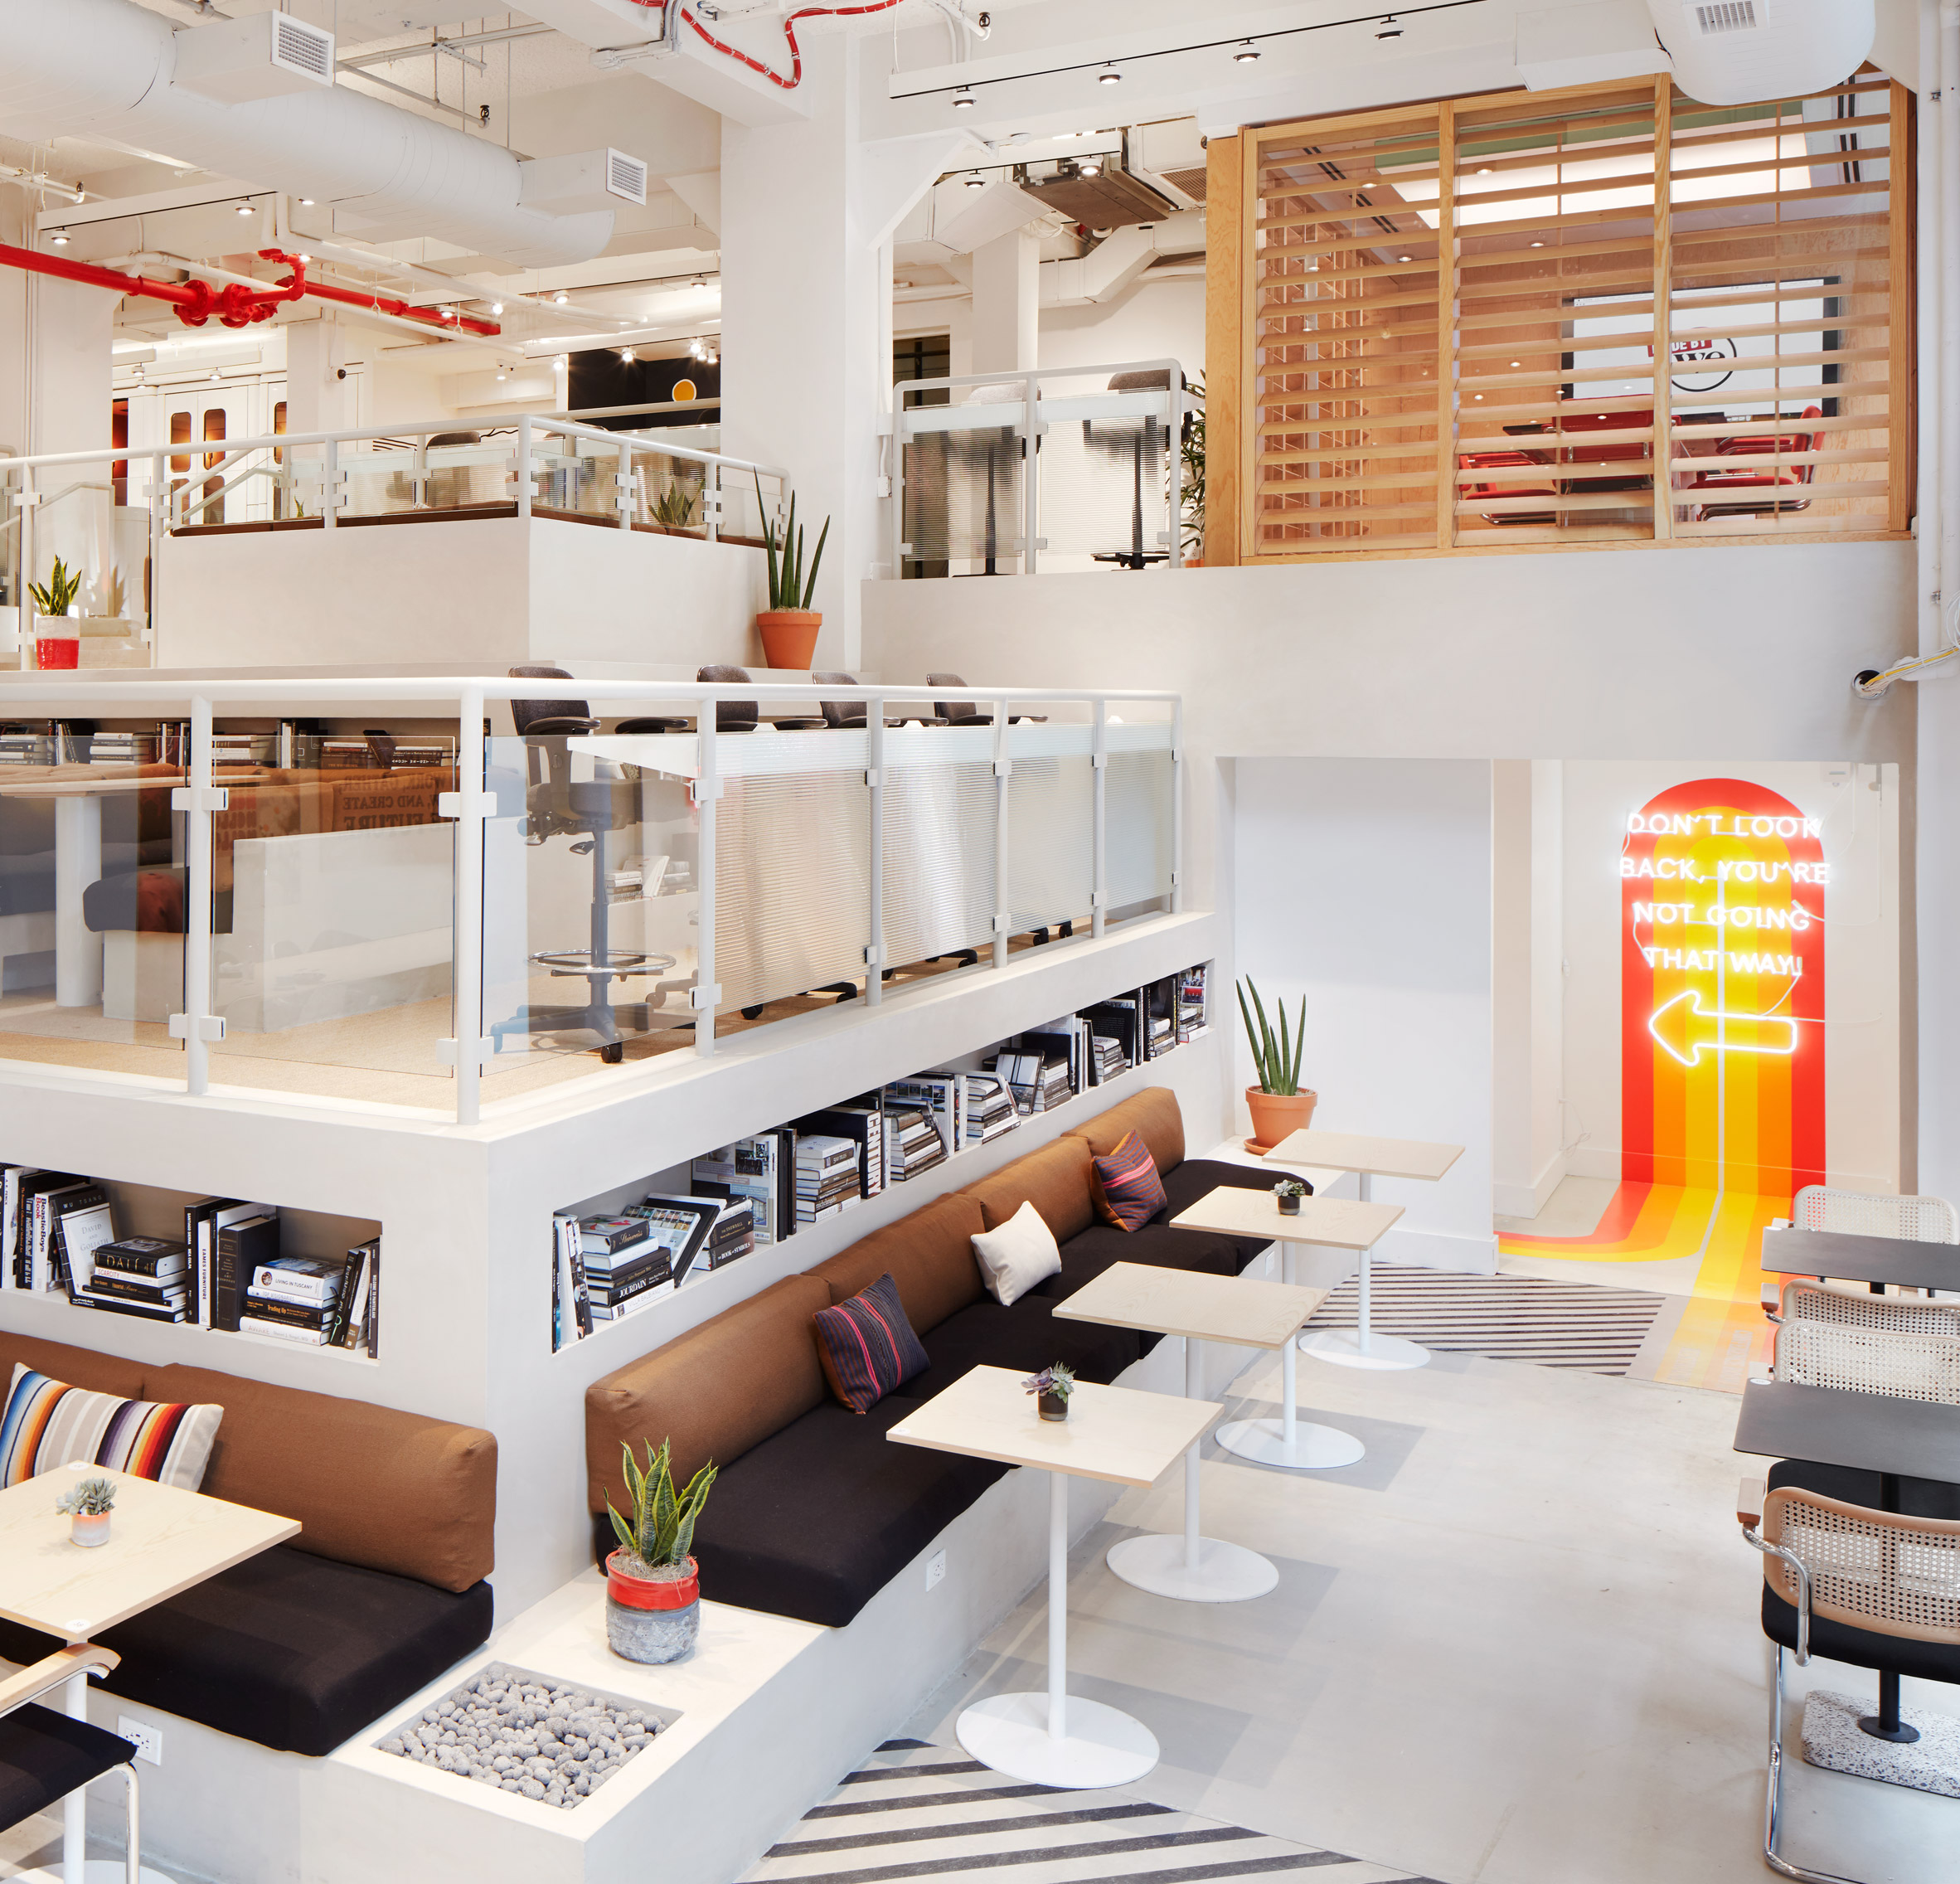 WeWork parent company The We Company opens New York retail